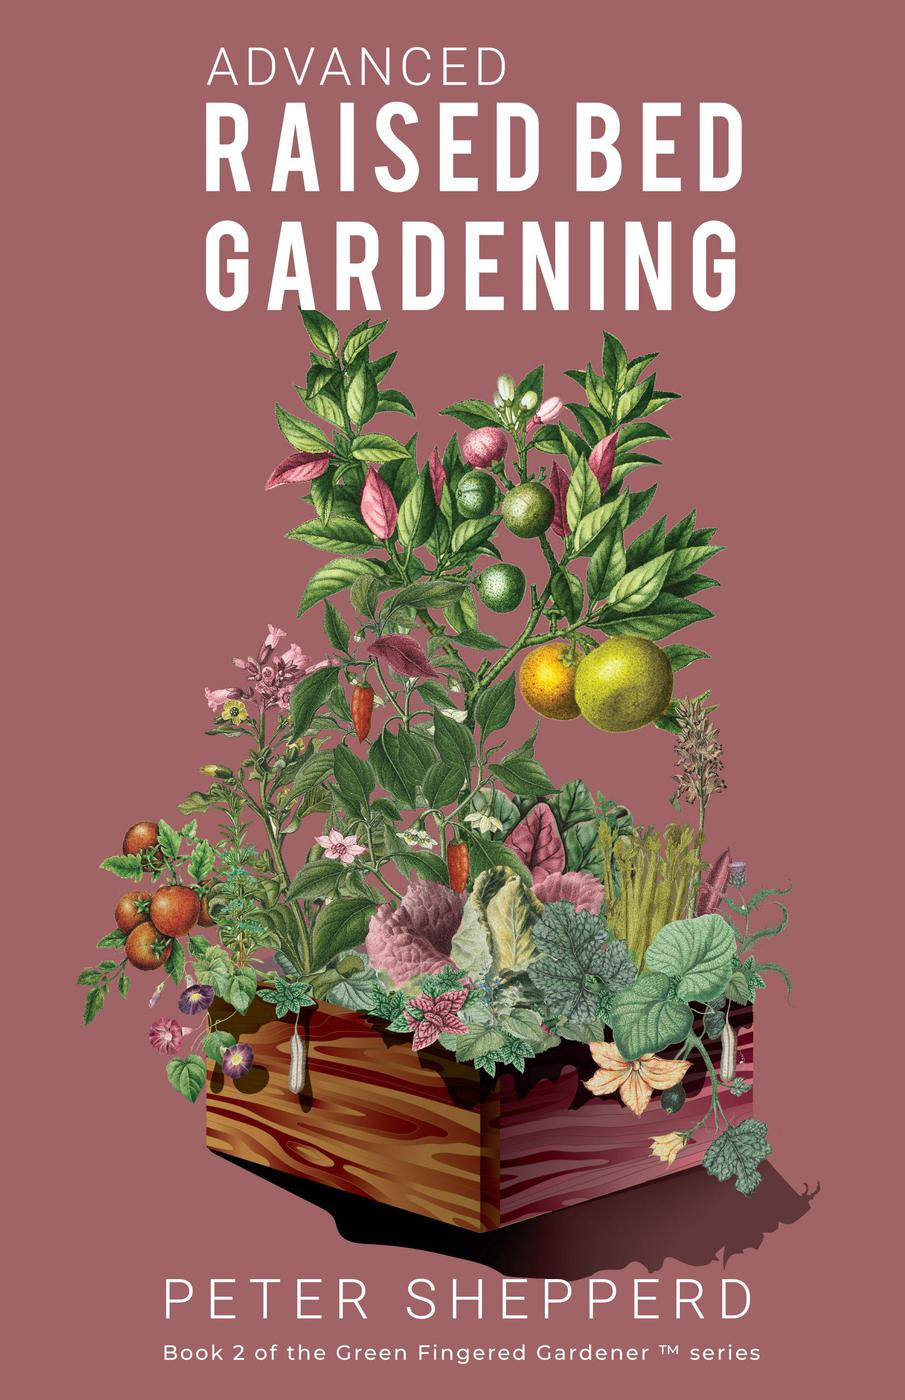 Advanced Raised Bed Gardening (The Green Fingered Gardener, #2)